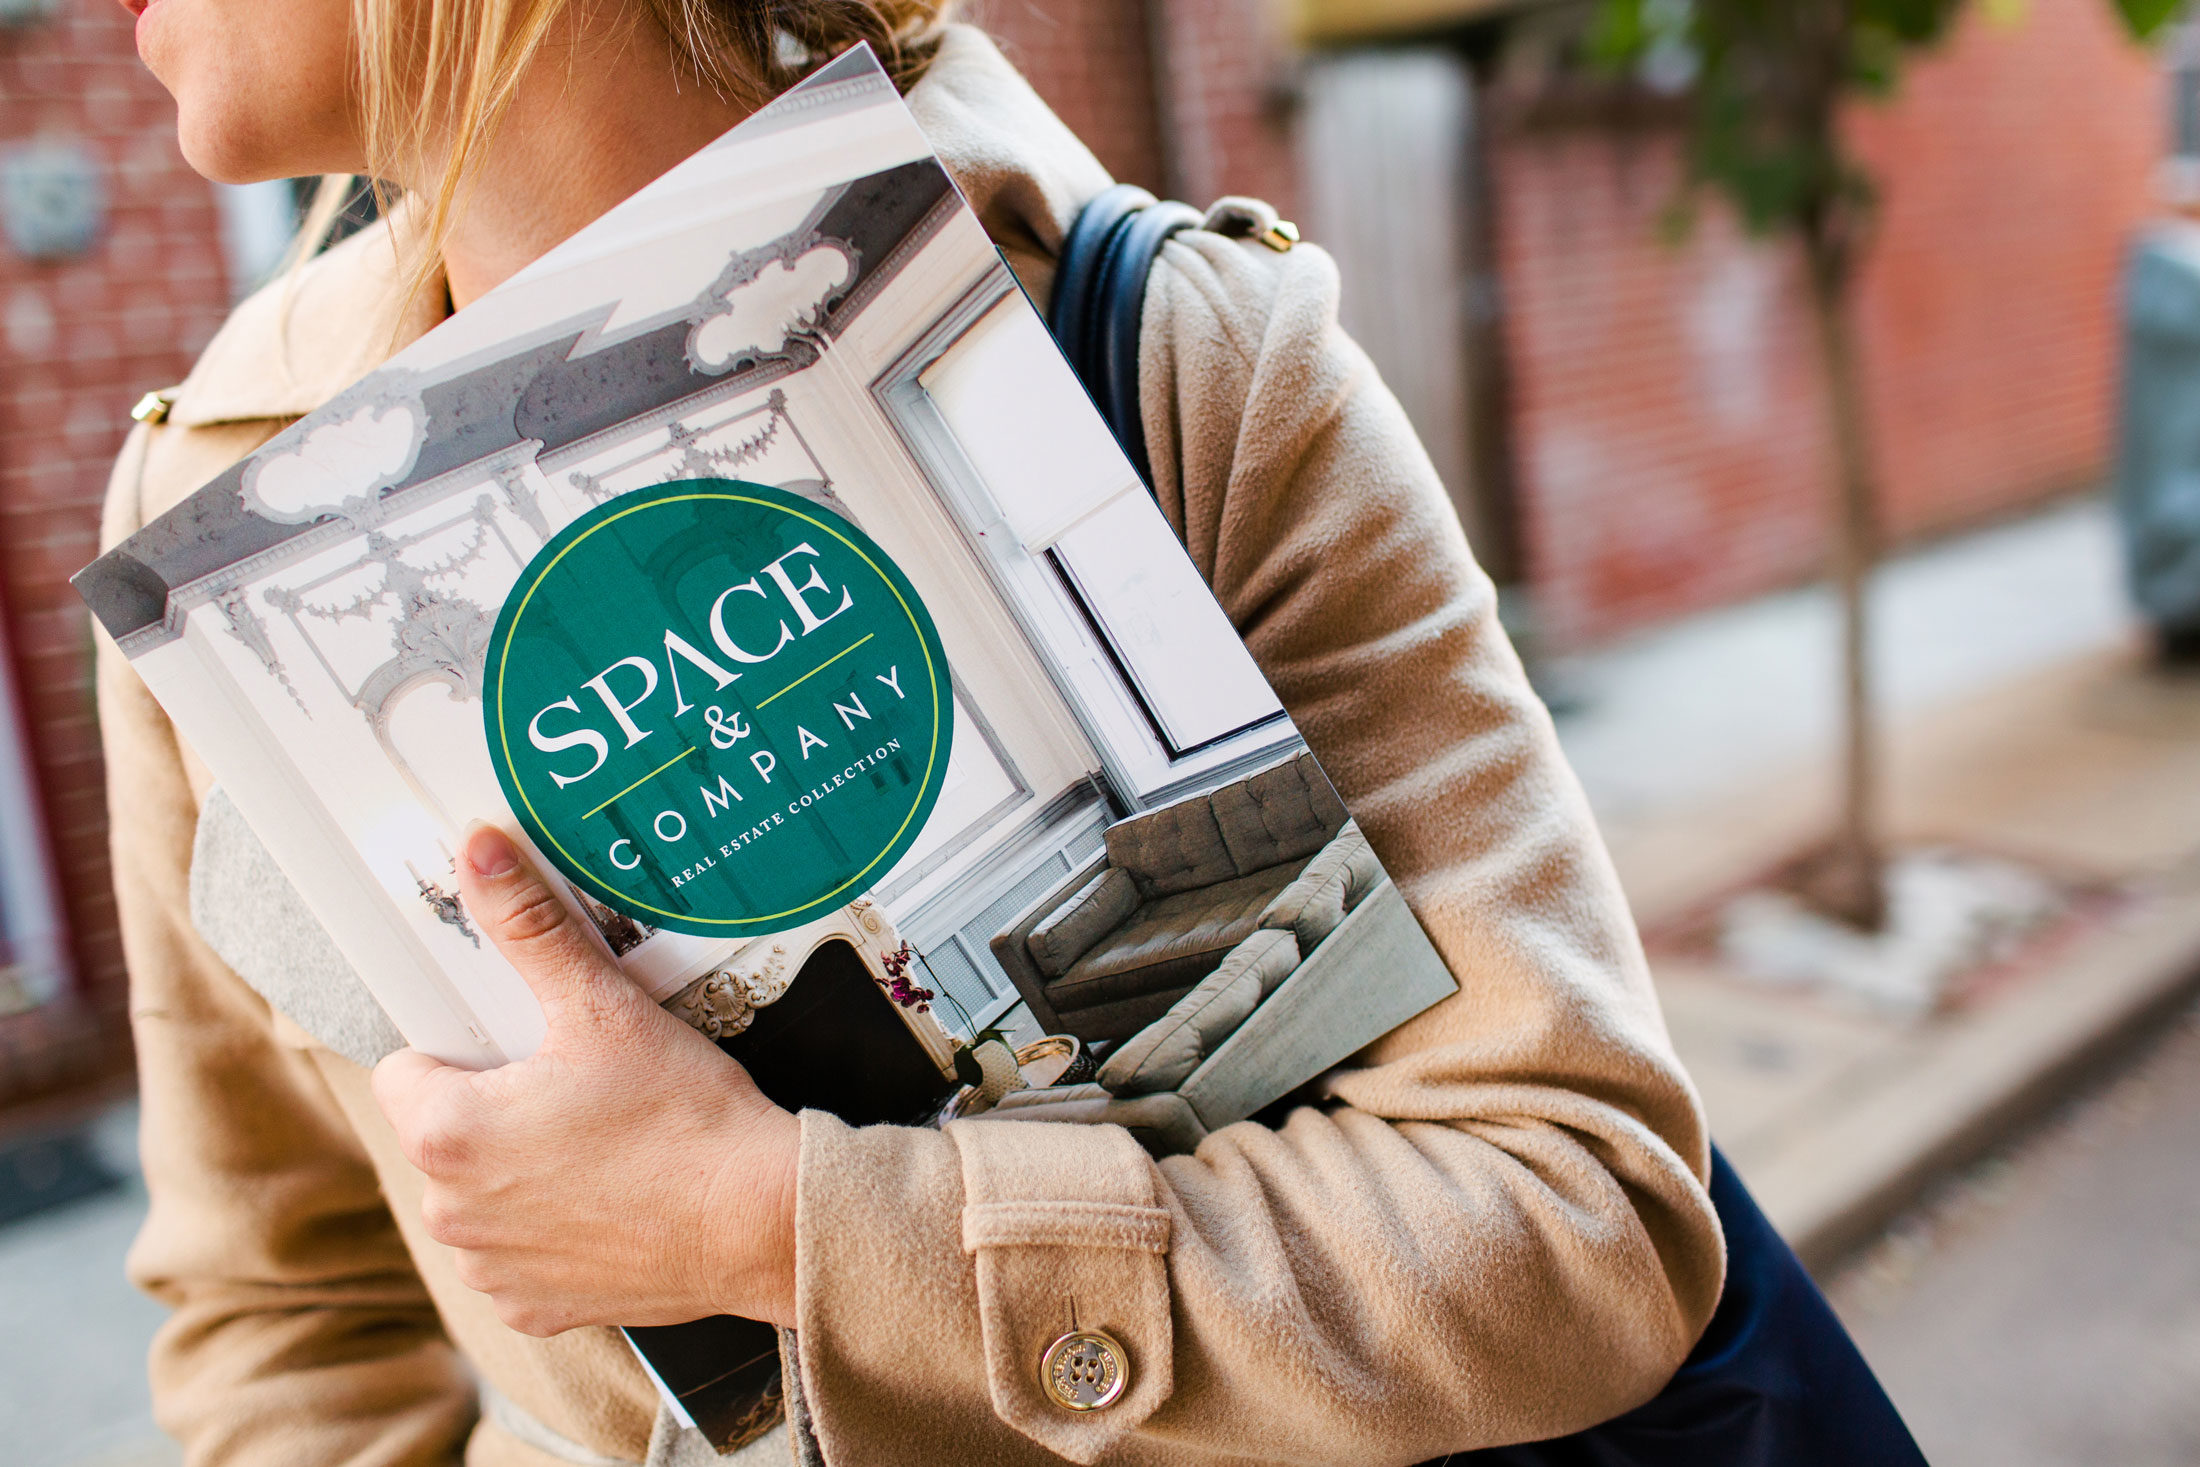 Space & Company agent holding real estate literature.